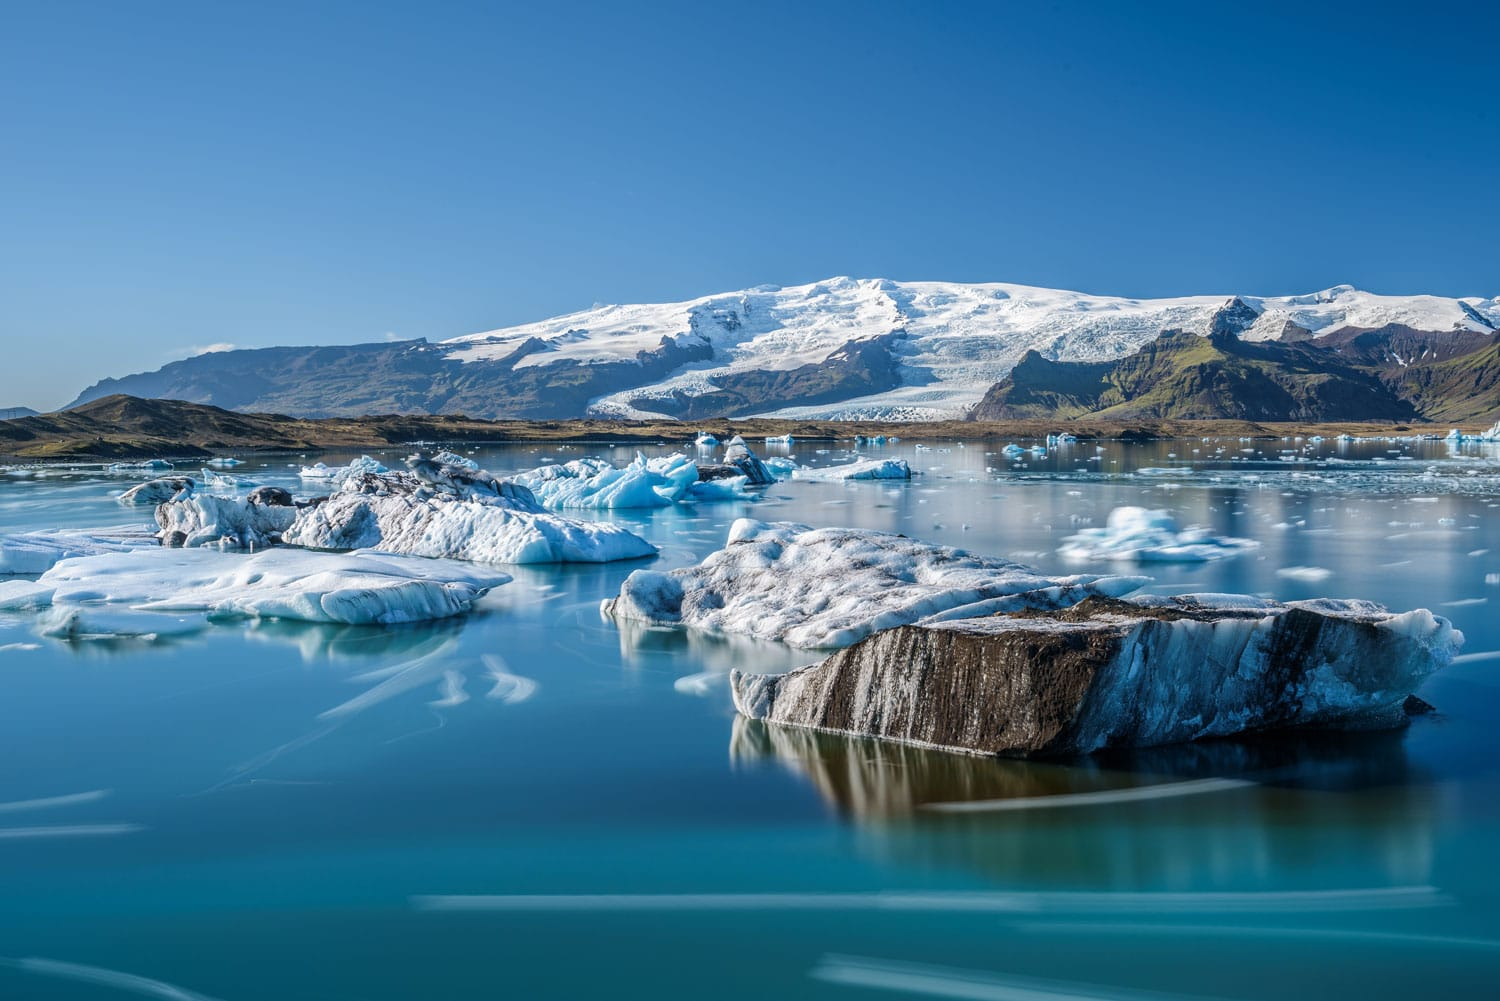 Floating icebergs in Jokulsarlon glacier lagoon, Iceland. Jokulsarlon is a glacial lake in southeast Iceland near Vatnajokull National Park.